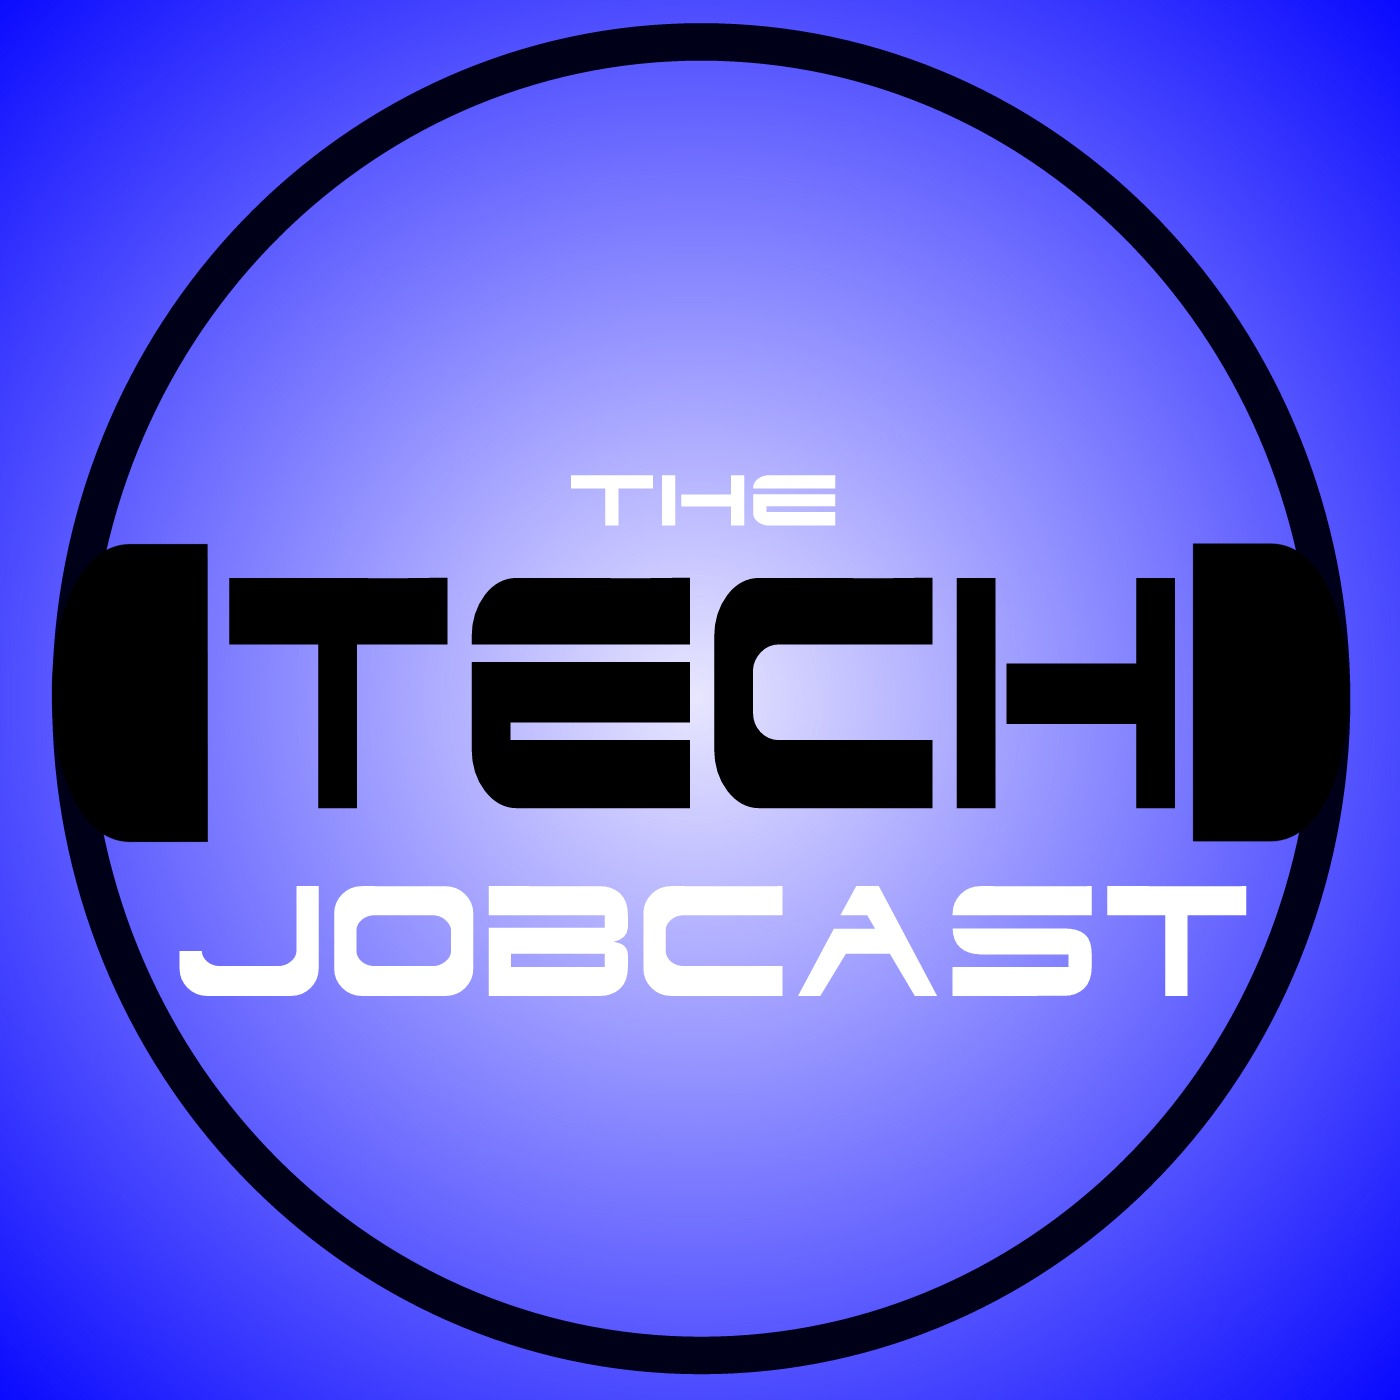 IT Job listings for the week of March 6, 2016